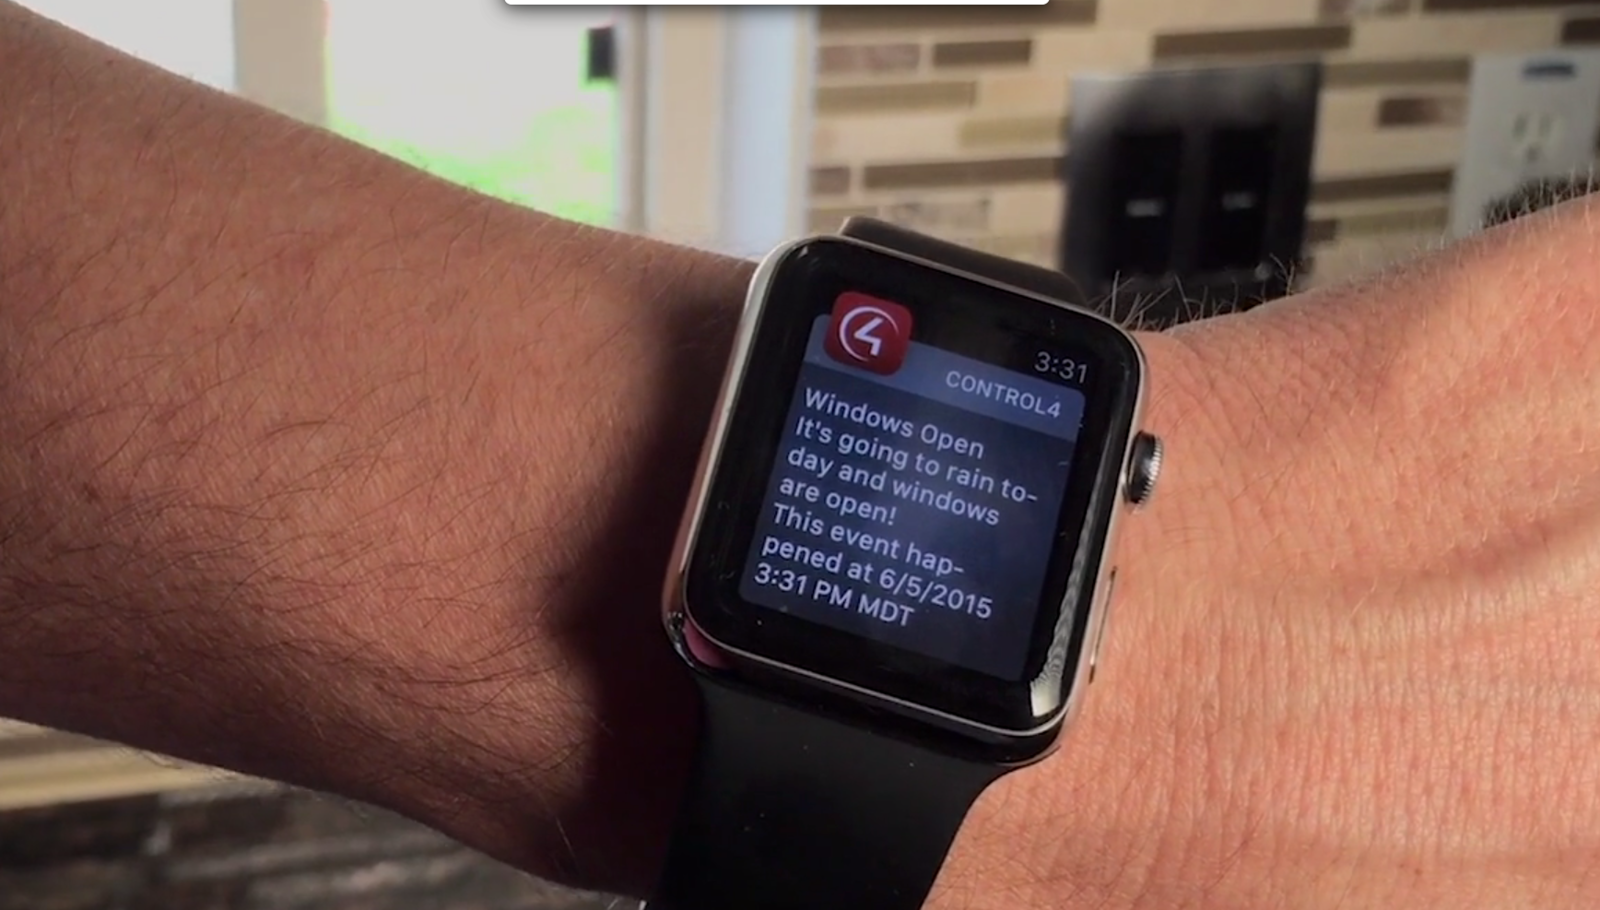 With smart home push notifications, receive proactive alerts on your mobile device or smart watch that inform you of important events happening at home, whether something is urgent and needs your attention immediately or just a simple status update to let you know things are safe and sound.